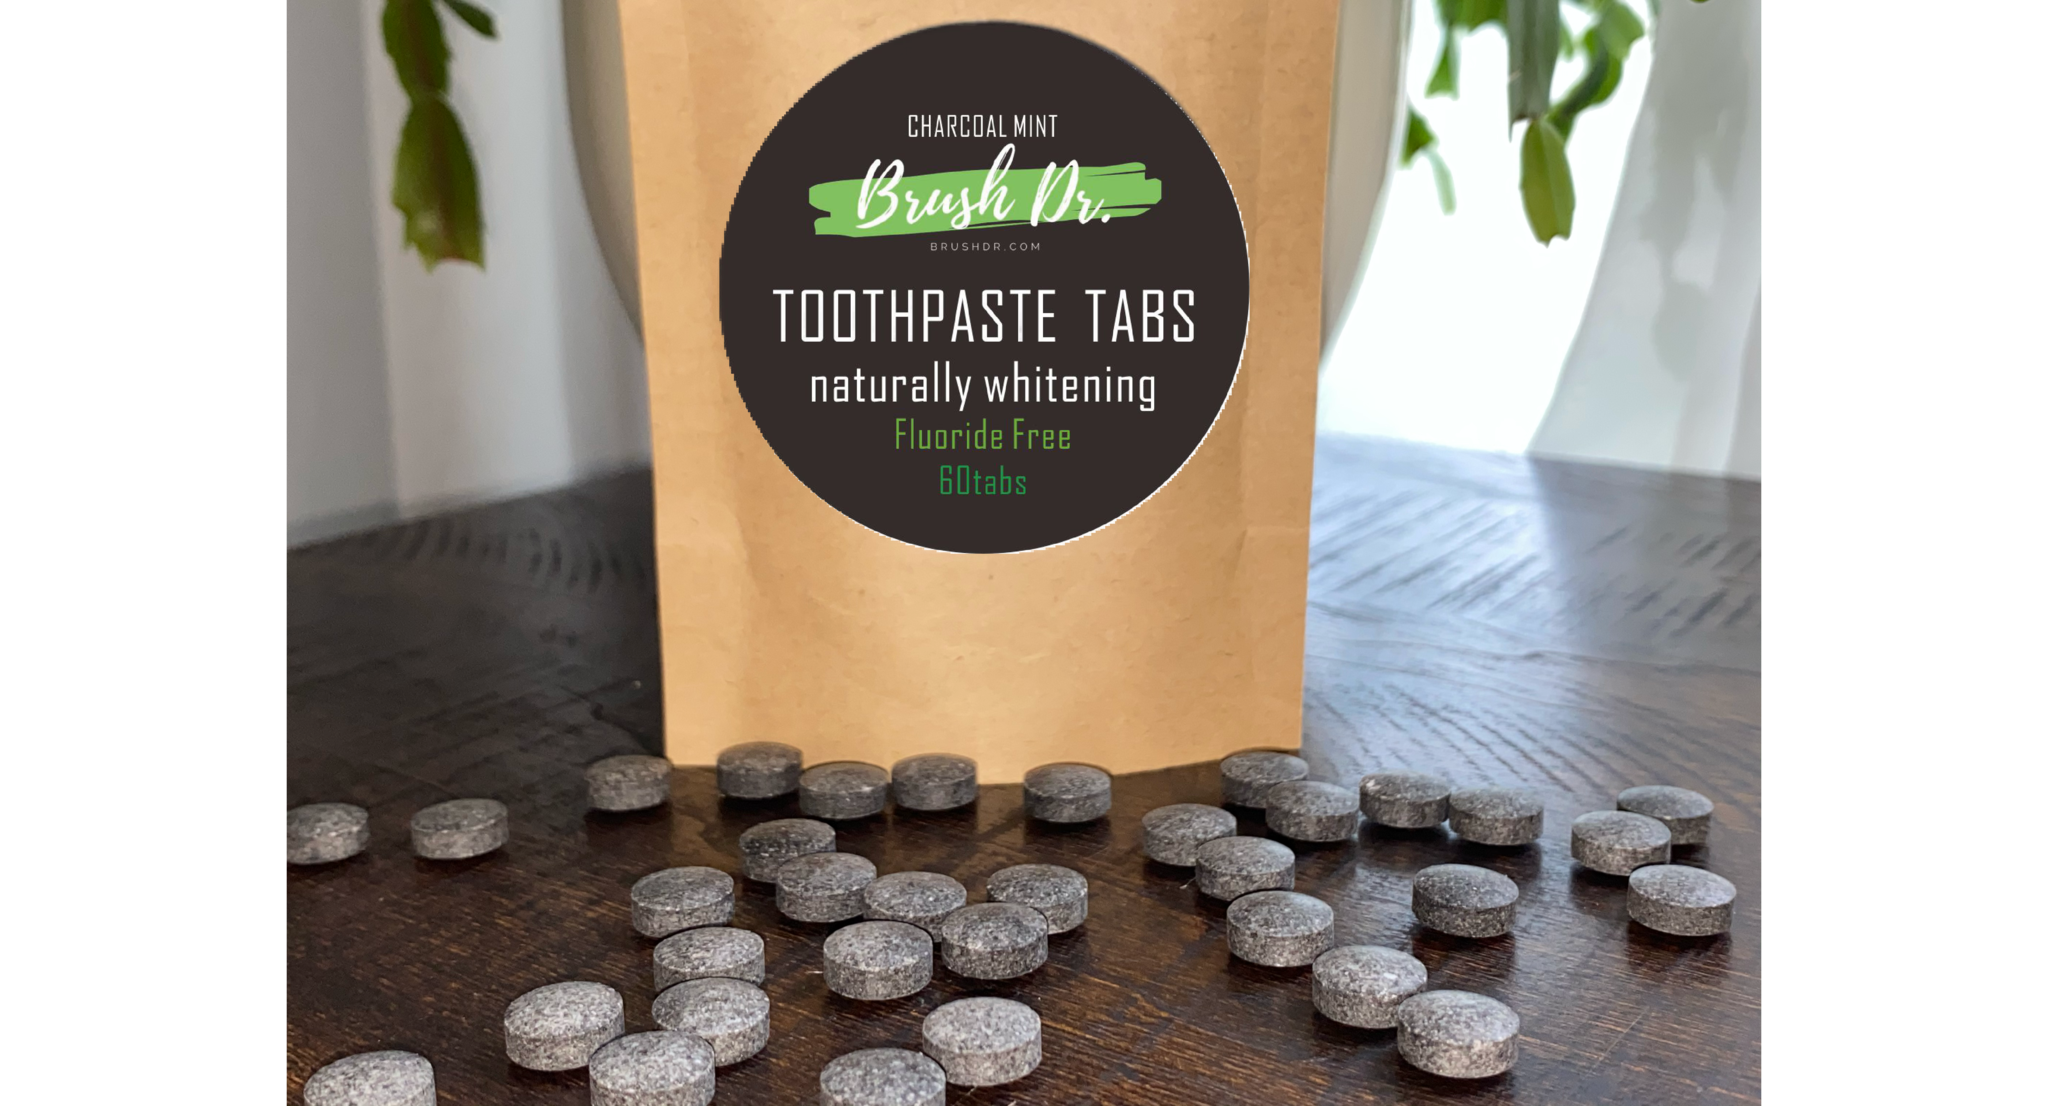 Charcoal Mint - Toothpaste Tabs